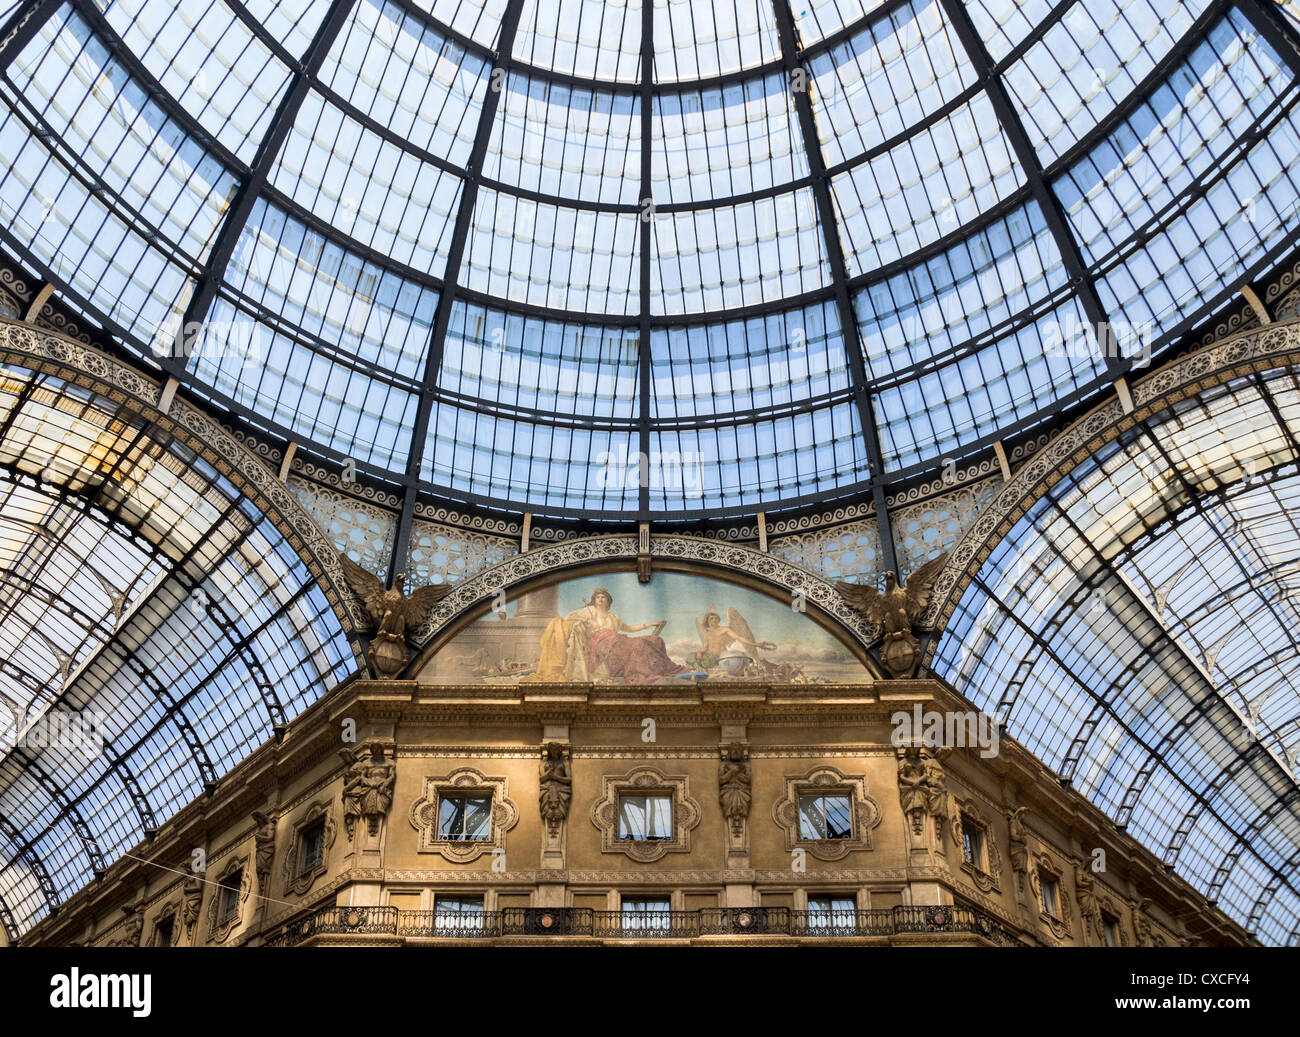 The domed glass ceiling of the Galleria Vittorio Emanuele ll shopping arcade in Milan, Italy Stock Photo